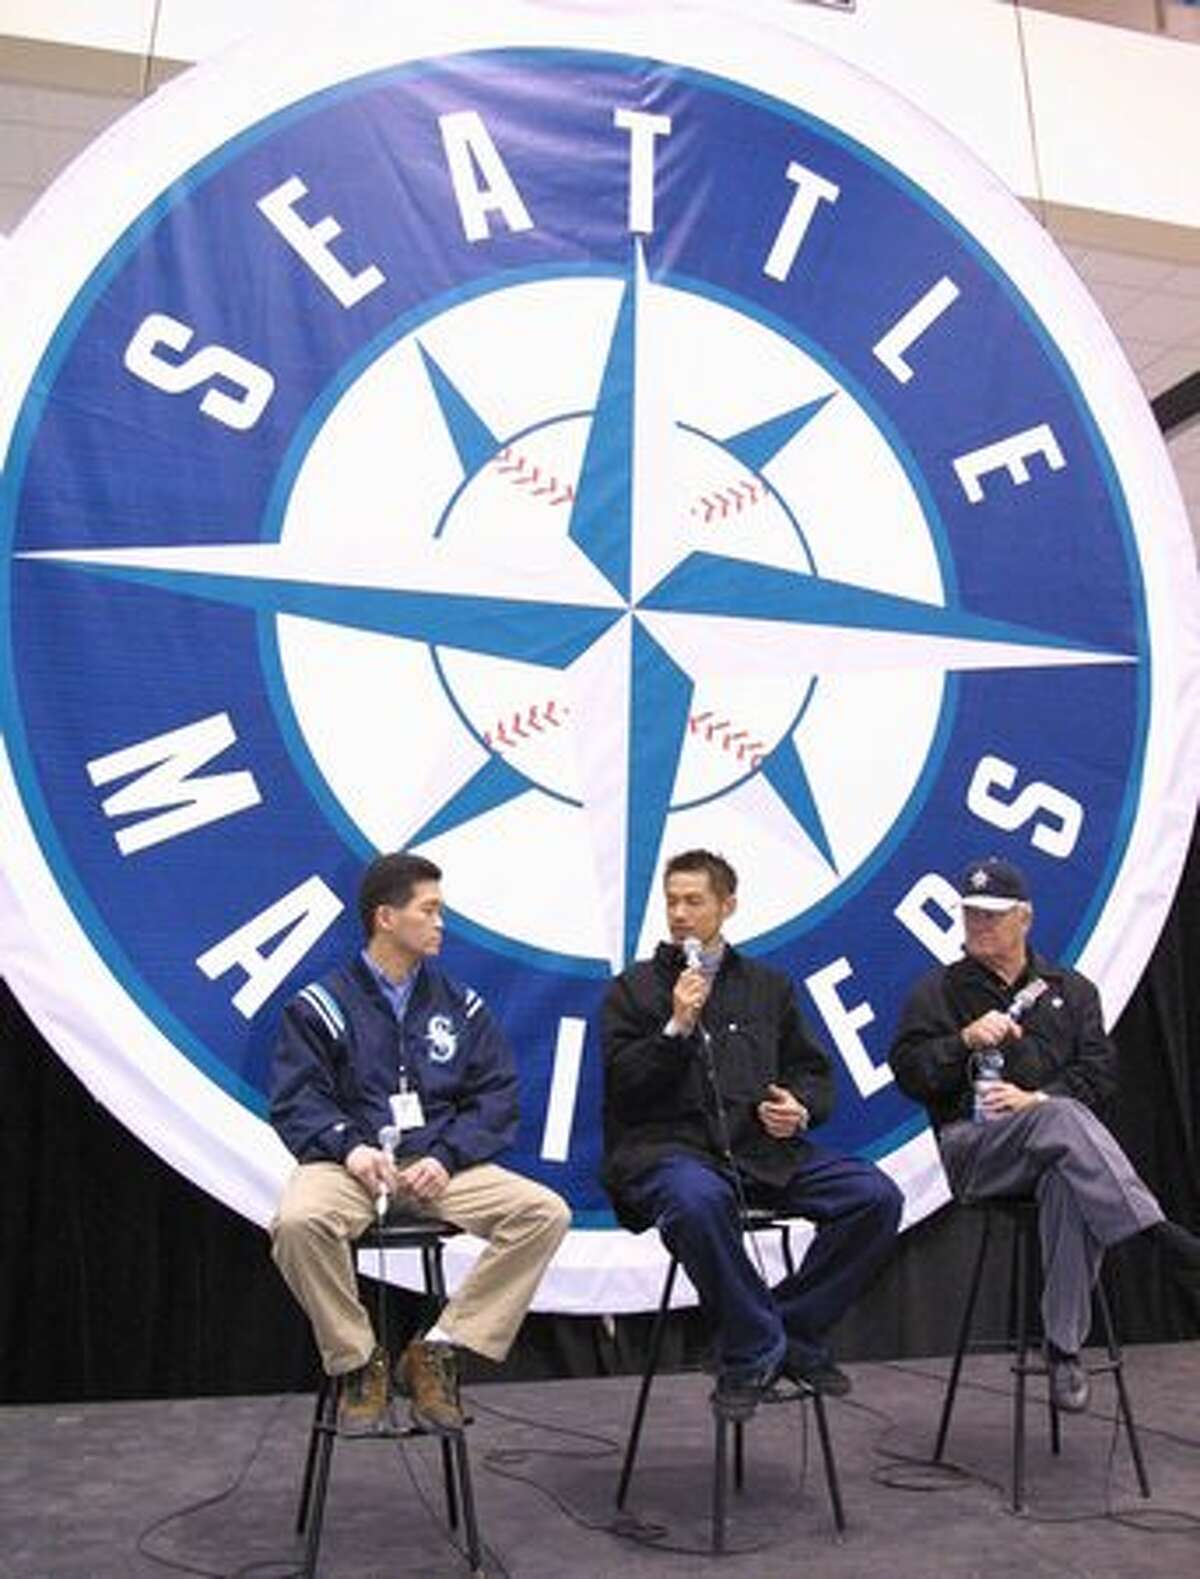 New Seattle Mariner player Ichiro Suzuki (C) answers questions from Seattle fans through team scout and translator Hide Sueyoshi (L) while team announcer Dave Niehaus looks on during a team-sponsored event on 04 February 2001.